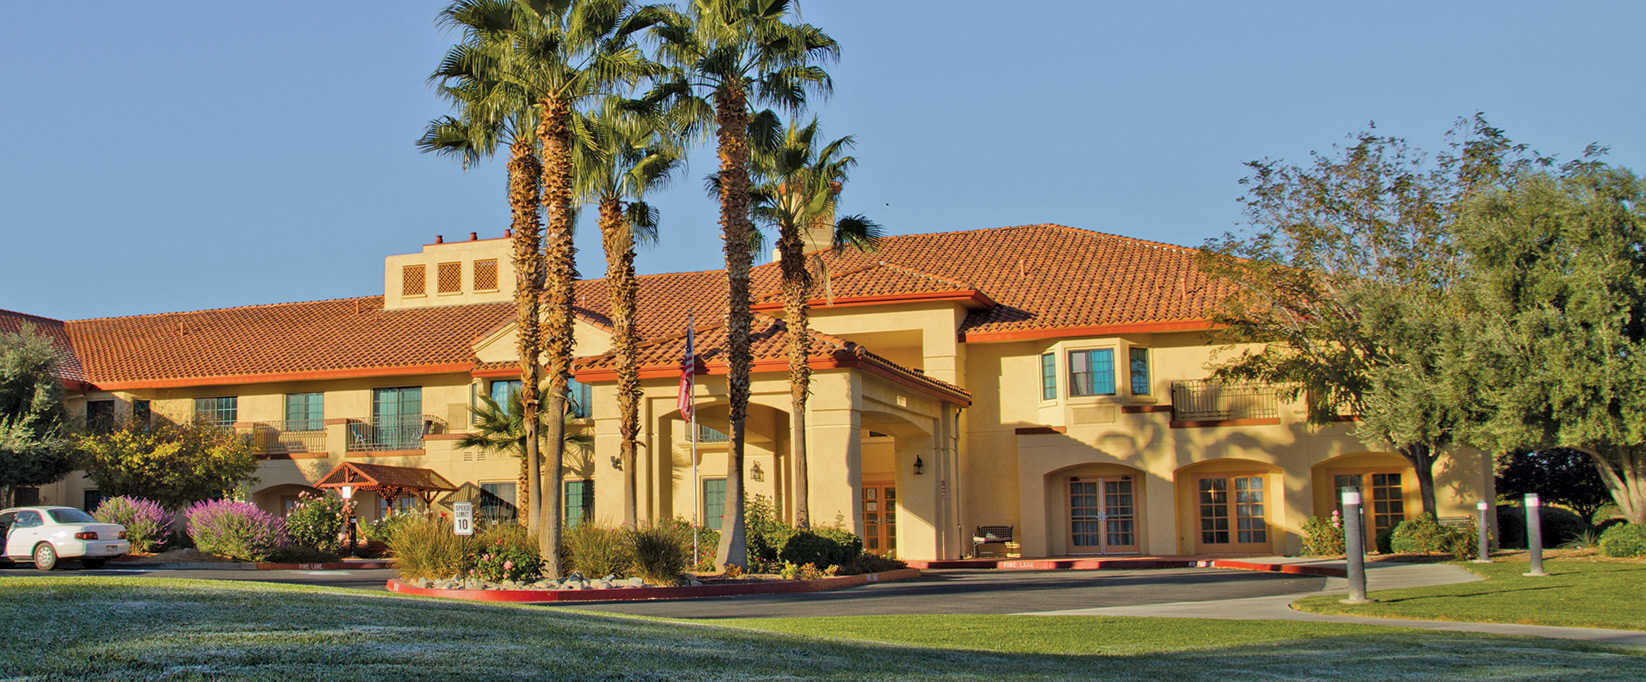 The Havens at Antelope Valley, an independent living and assisted living community in Lancaster, California.